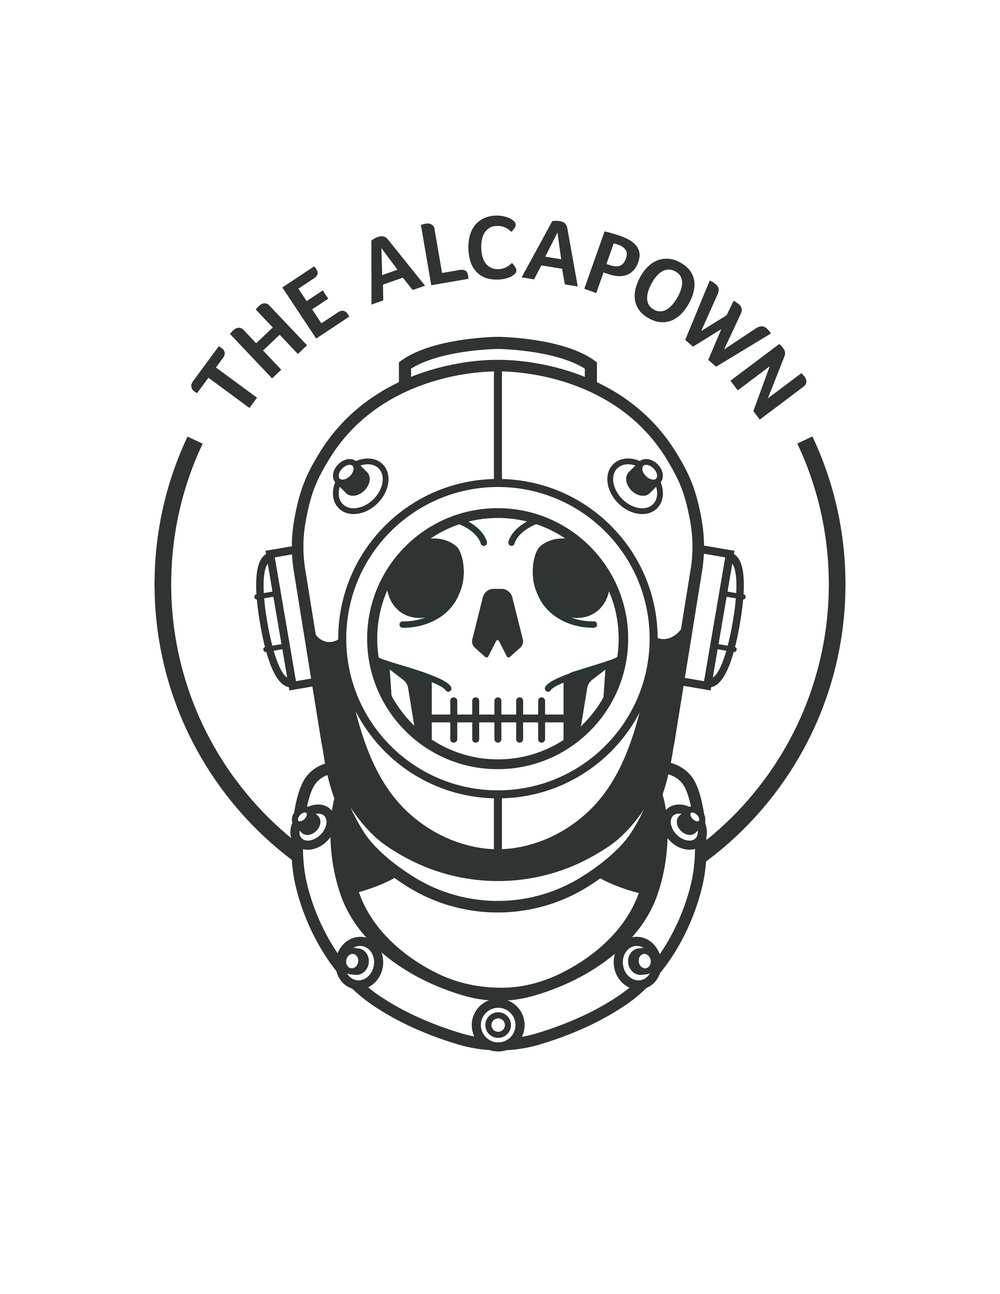 TheAlcapown Logo Layout-02.jpg